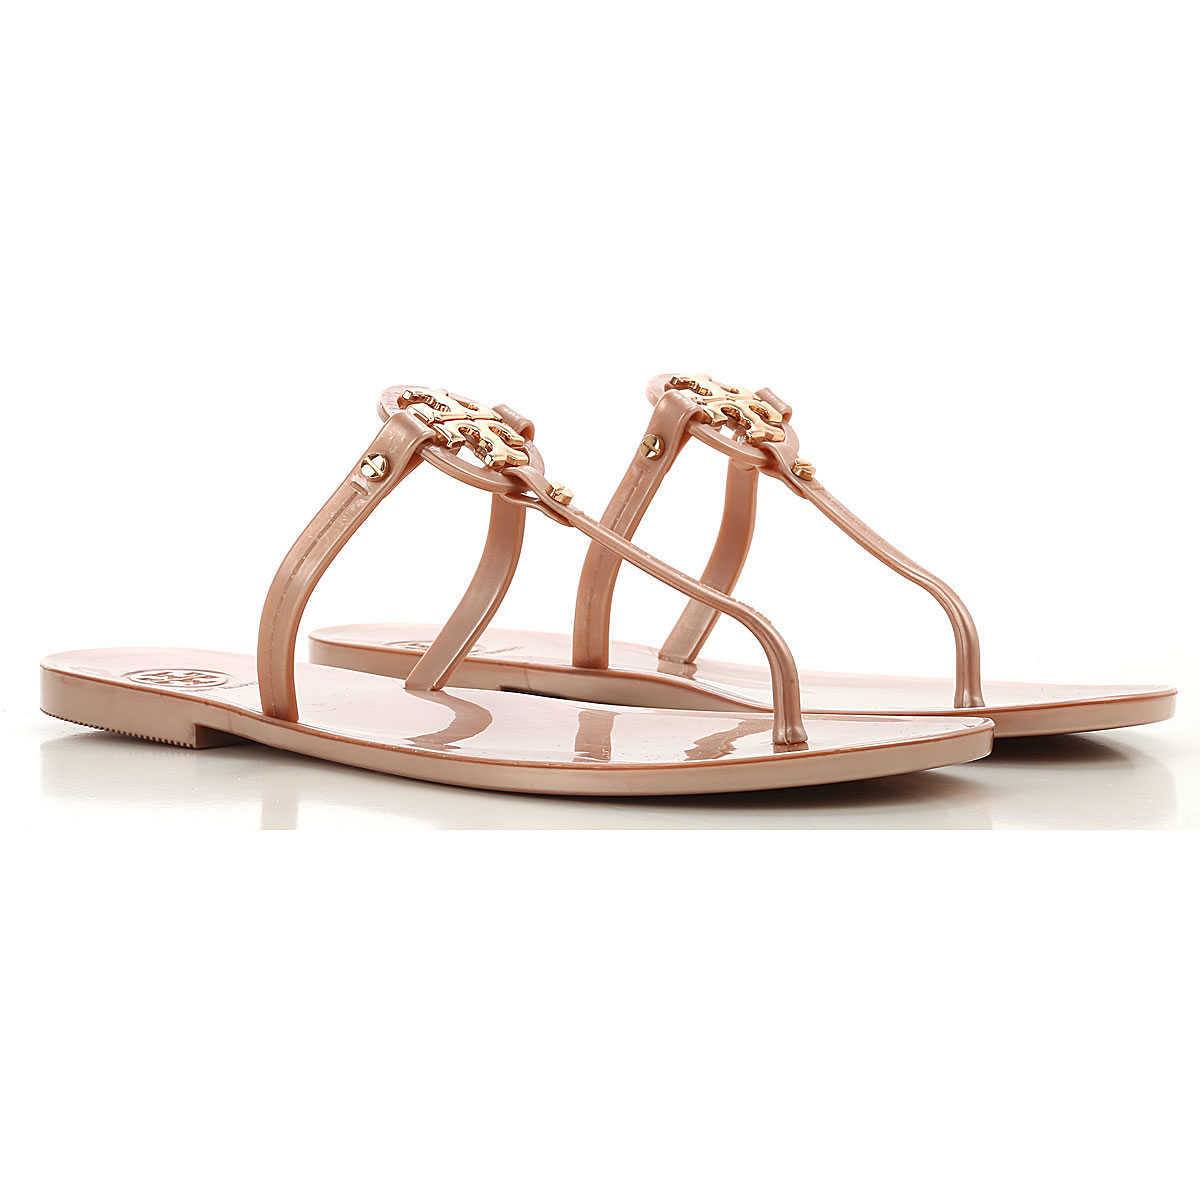 Tory Burch Sandals for Women On Sale Rose Gold - GOOFASH